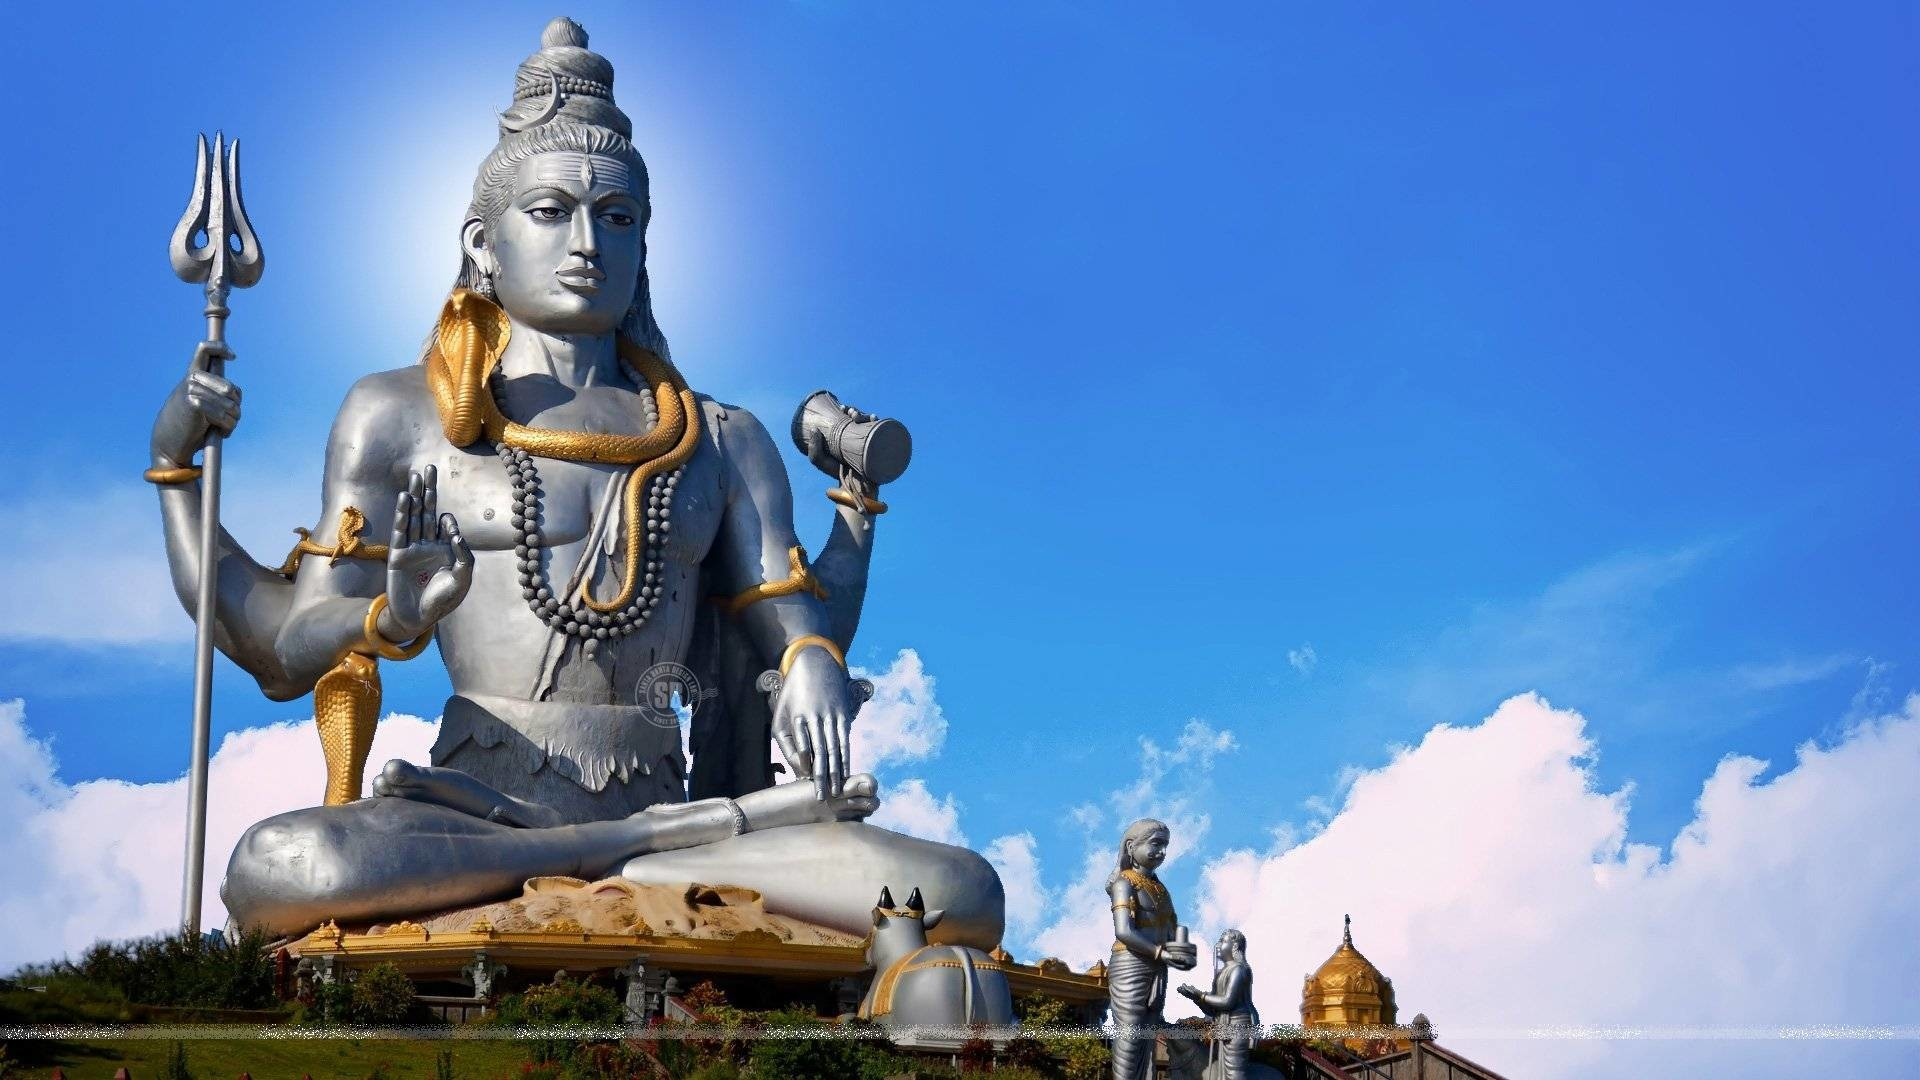 Lord Shiva Desktop Wallpapers Hd: Hindu God HD Wallpapers 1080p (68+ Images